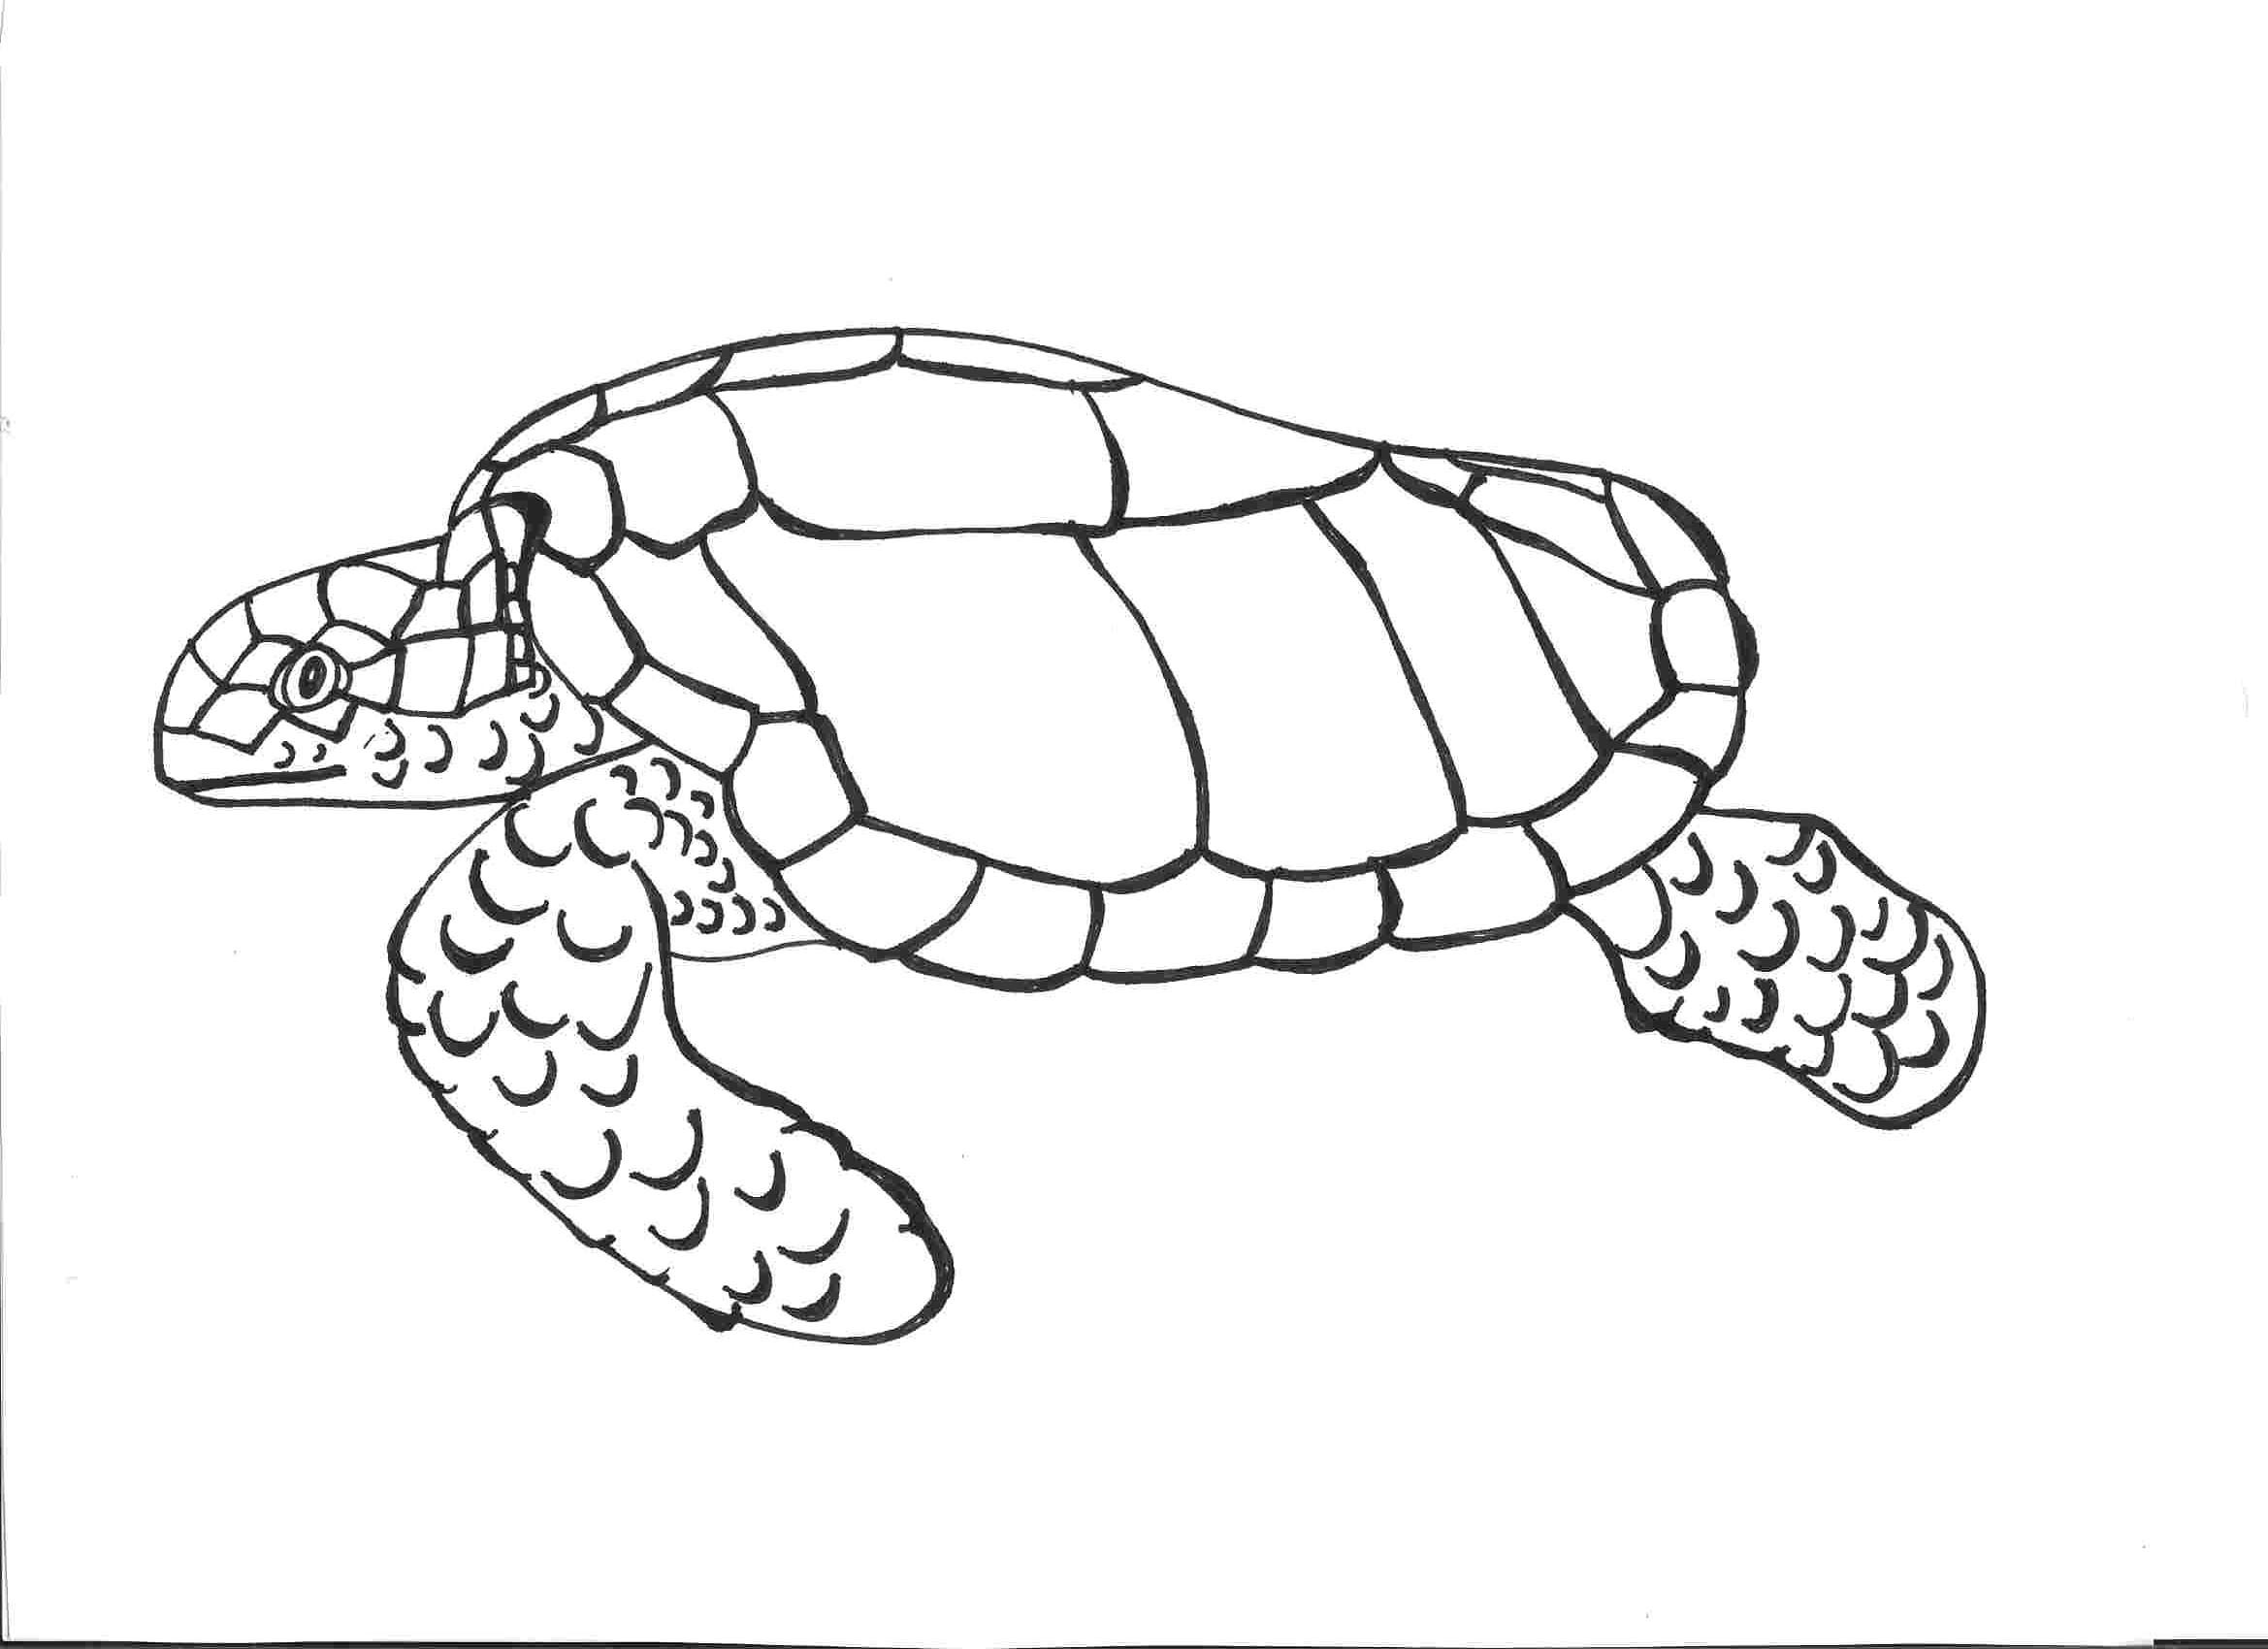 2338x1700 Turtle Shell Coloring Pages Best Of Innovative Sea Turtle To Color